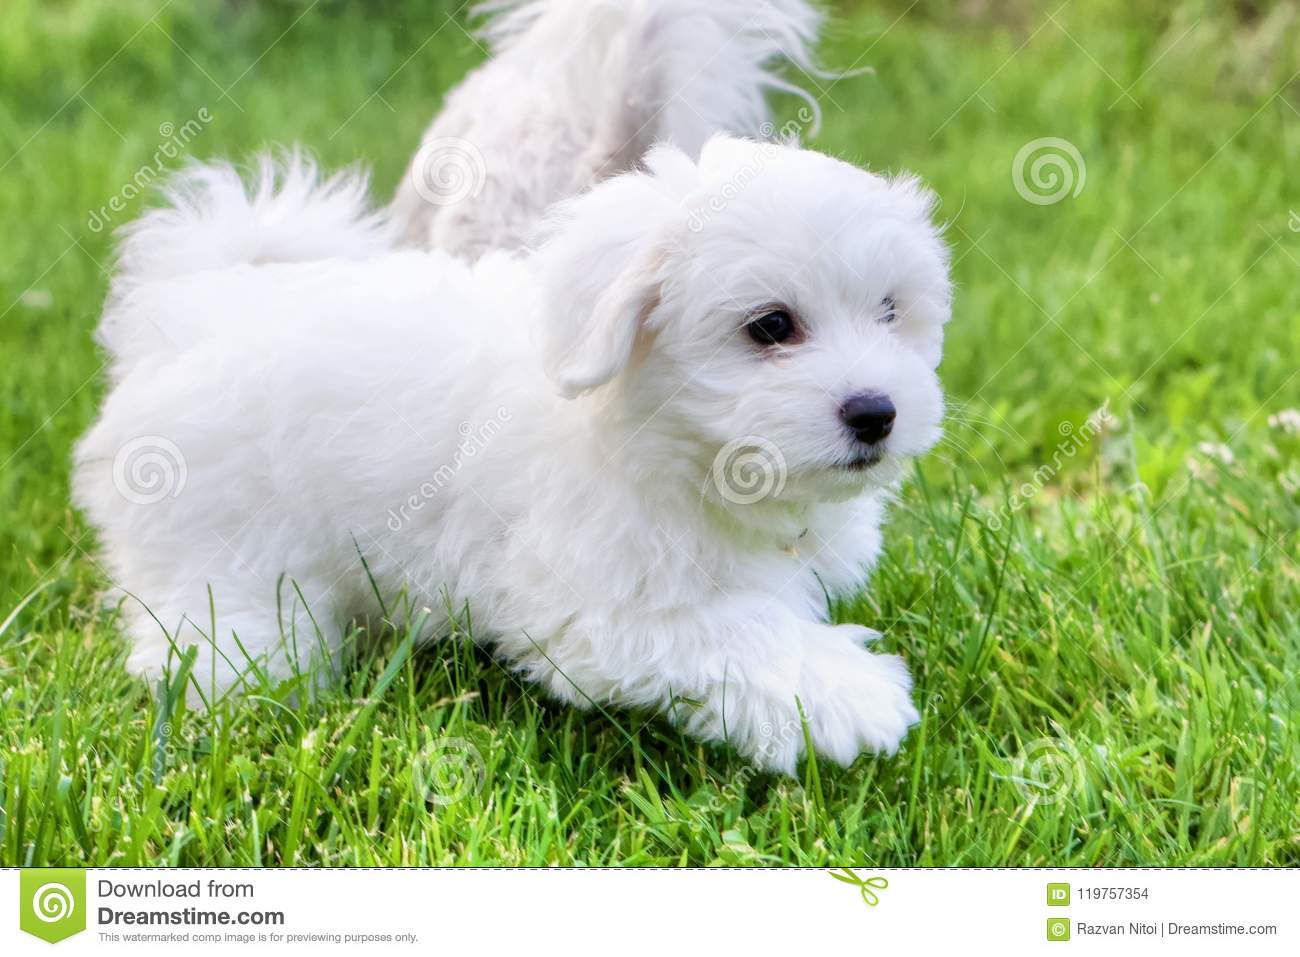 Cute White Bichon Puppies Playing In Grass Stock Photo Image Of